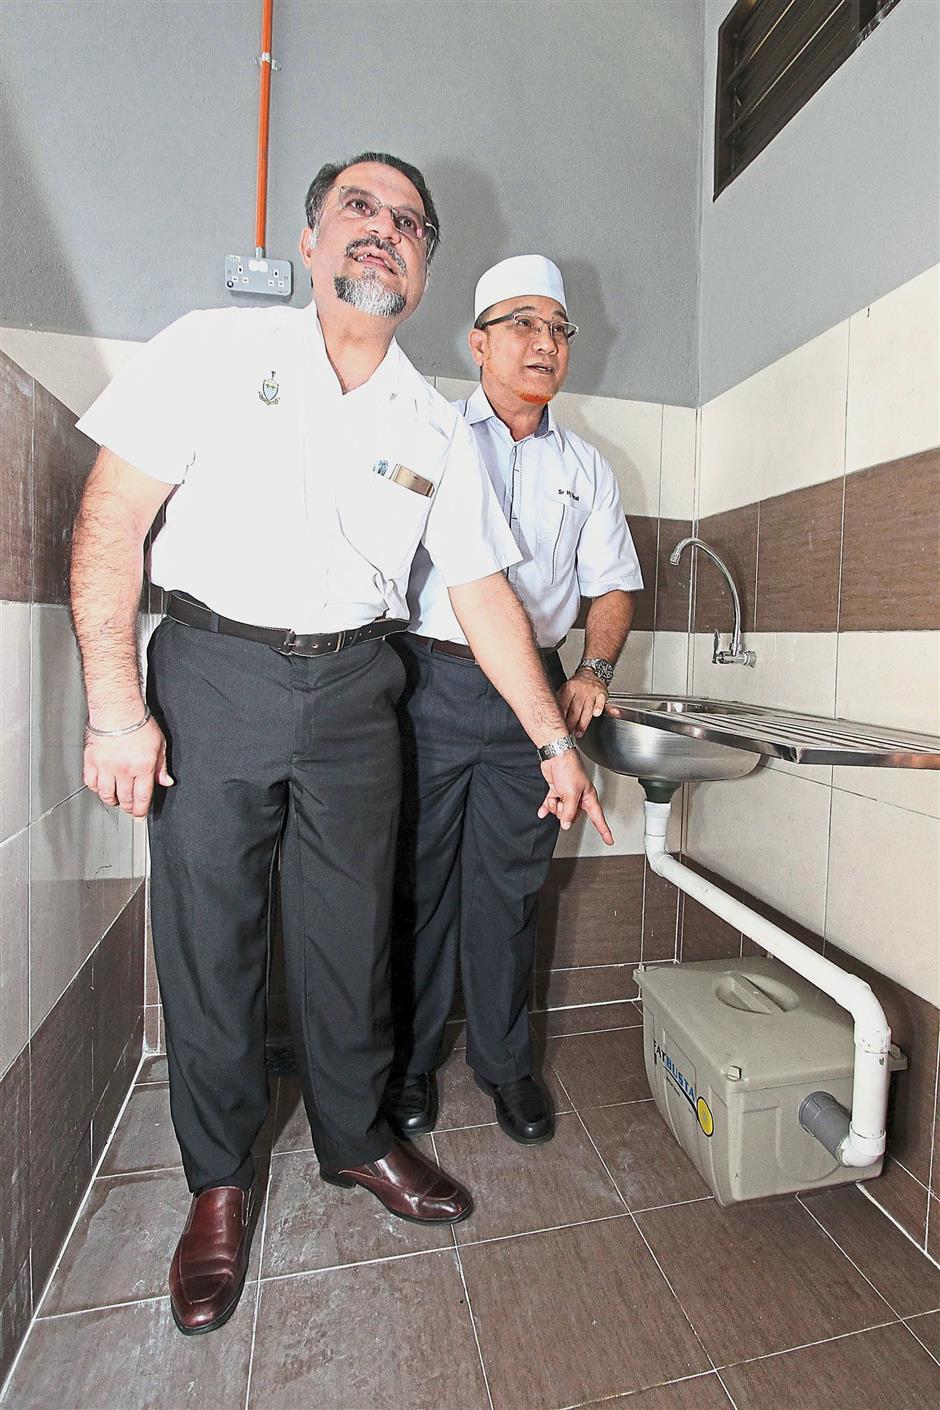 State Housing, Town, Country Planning and Local Government Committee chairman Jagdeep Singh Deo (left) and Seberang Prai Municipal Council (MPSP) president Datuk Rozali Mohamud showing the grease trap installed under a sink at the food stall complex in Sri Penanti Market in Bukit Mertajam on Sept 30, 2018. / star pic by LO TERN CHERN / The Star / Sept 30, 2018.